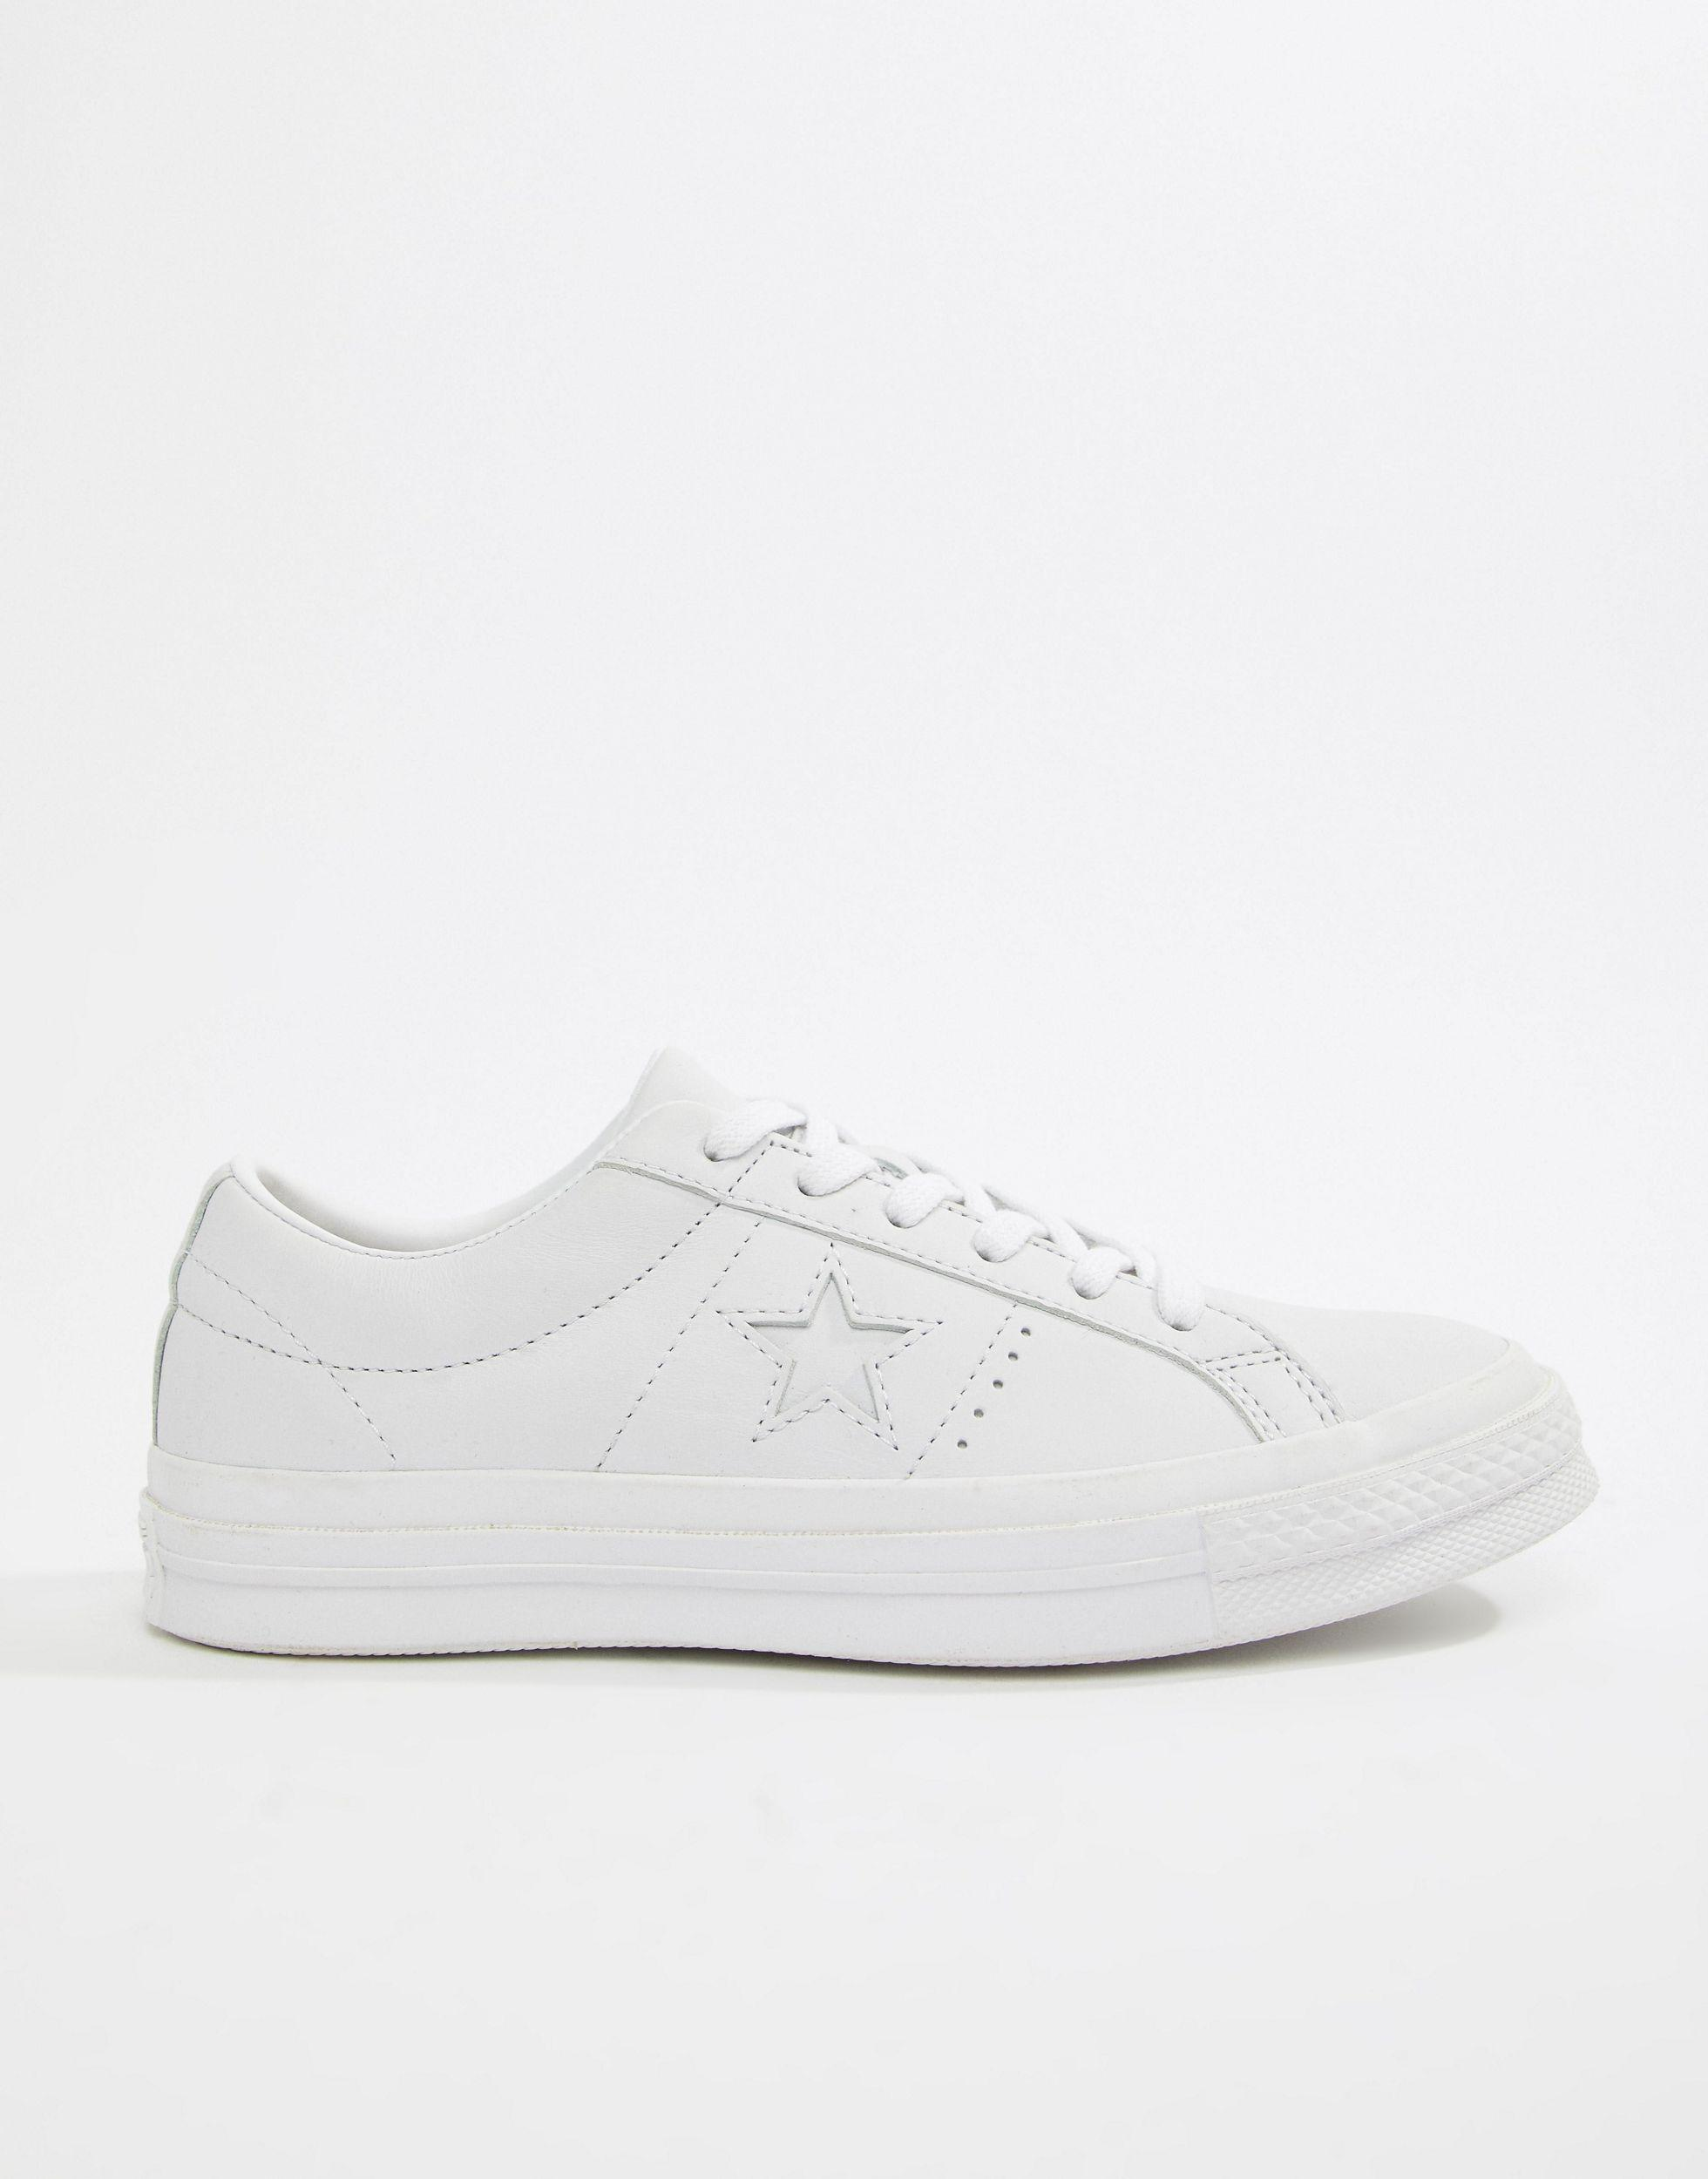 Converse One Star Triple Leather White